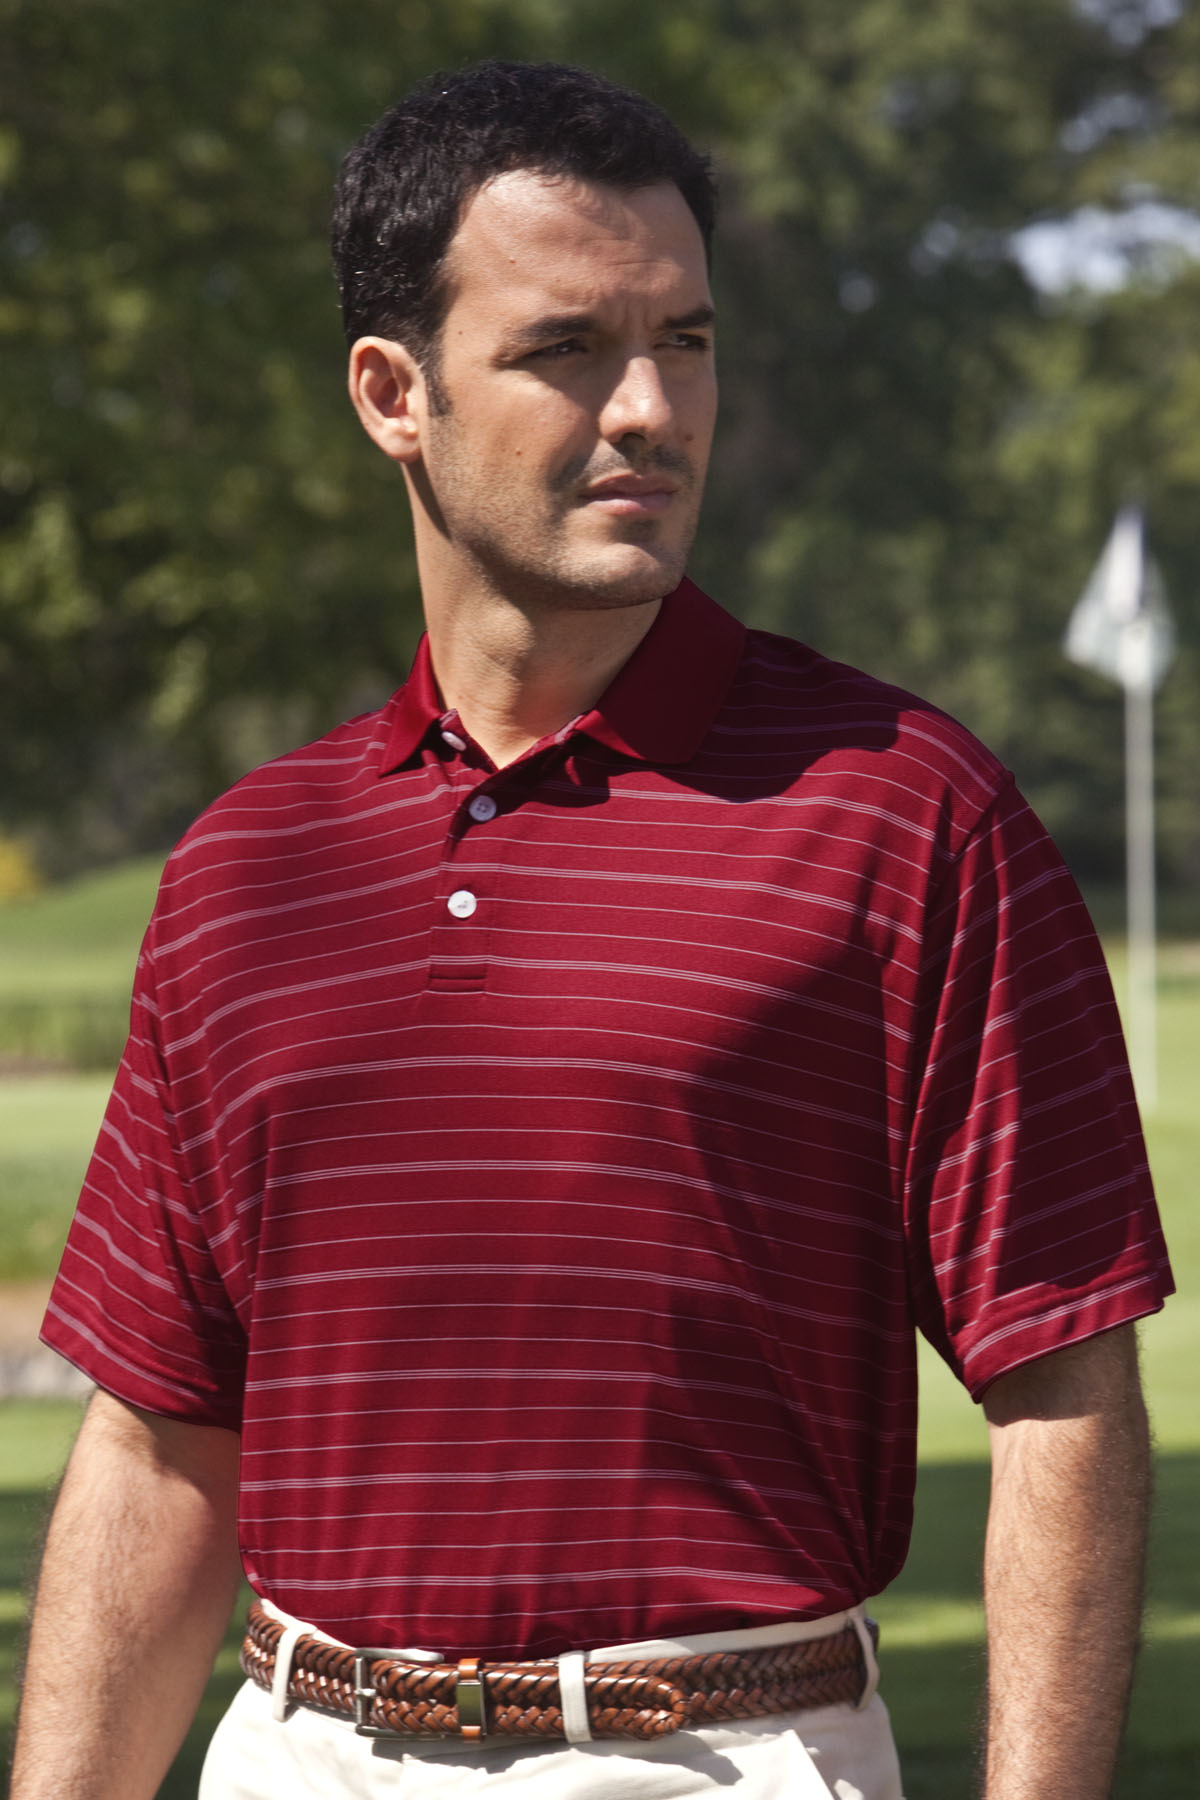 Vansport 2943 - Vansport Two-Color Textured Stripe Polo